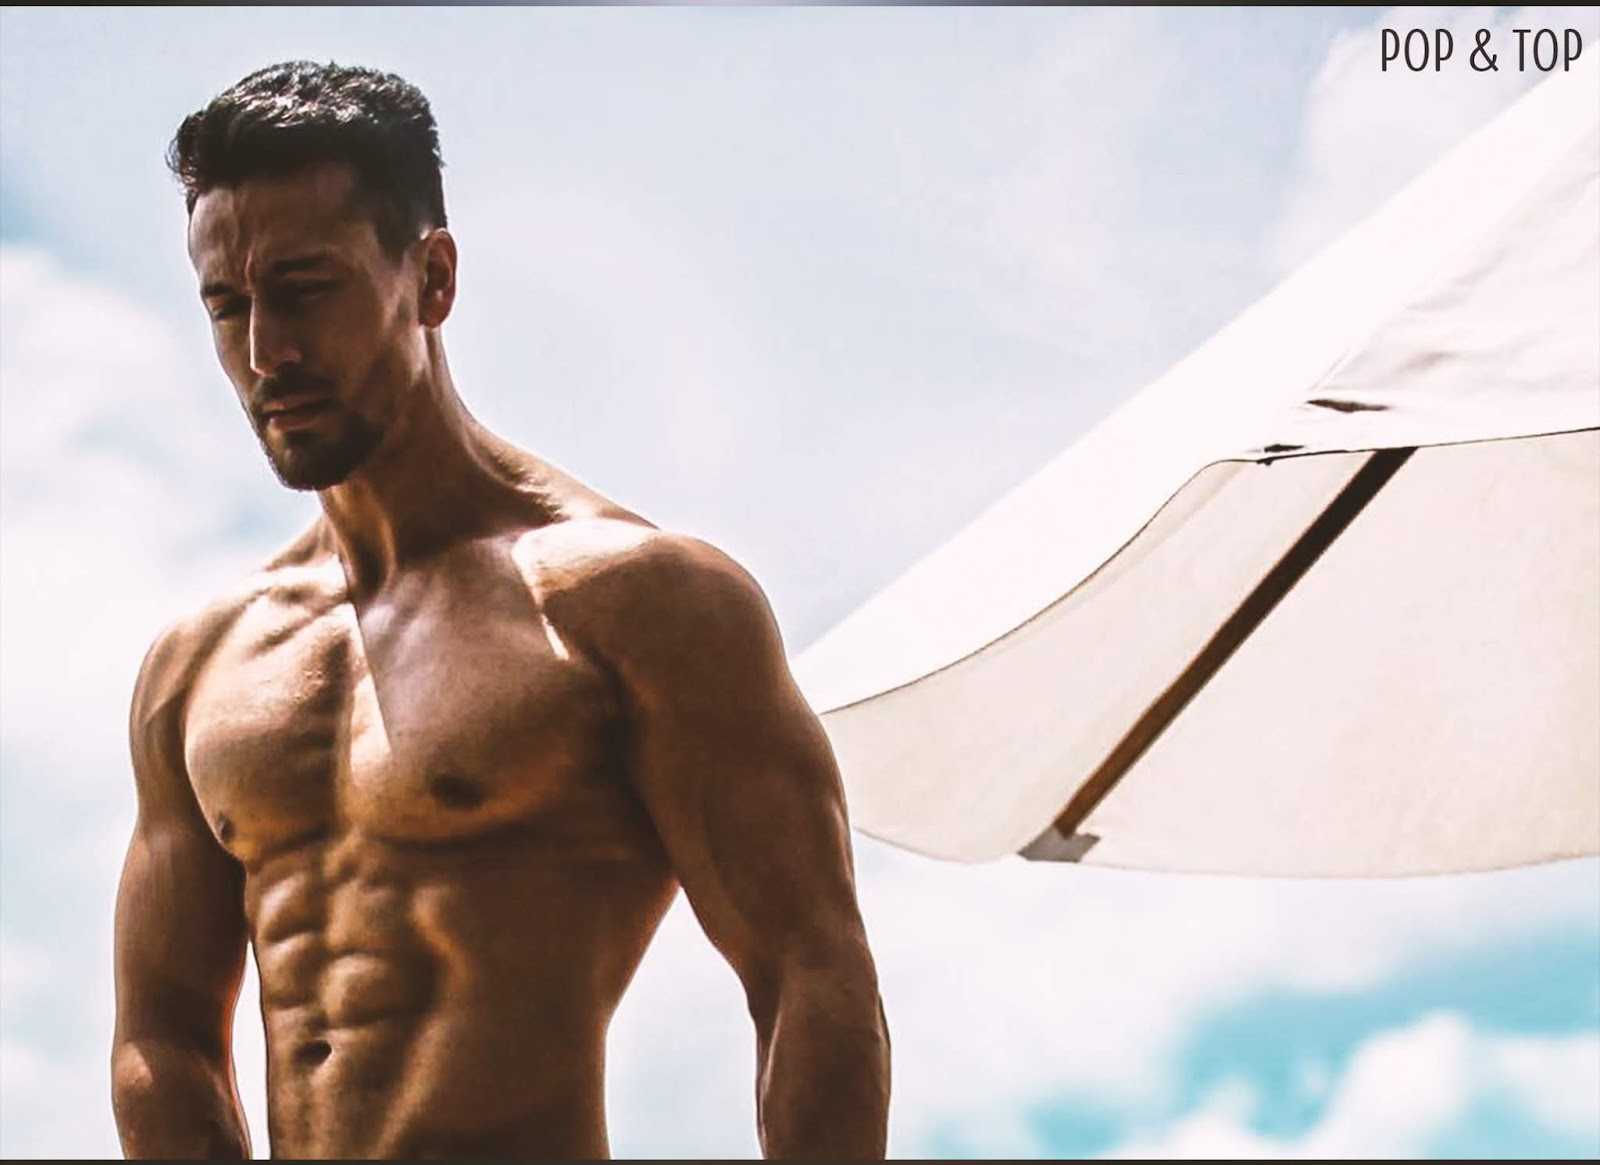 Download 9 Tiger Shroff Hot Body Wallpapers Pop And Top